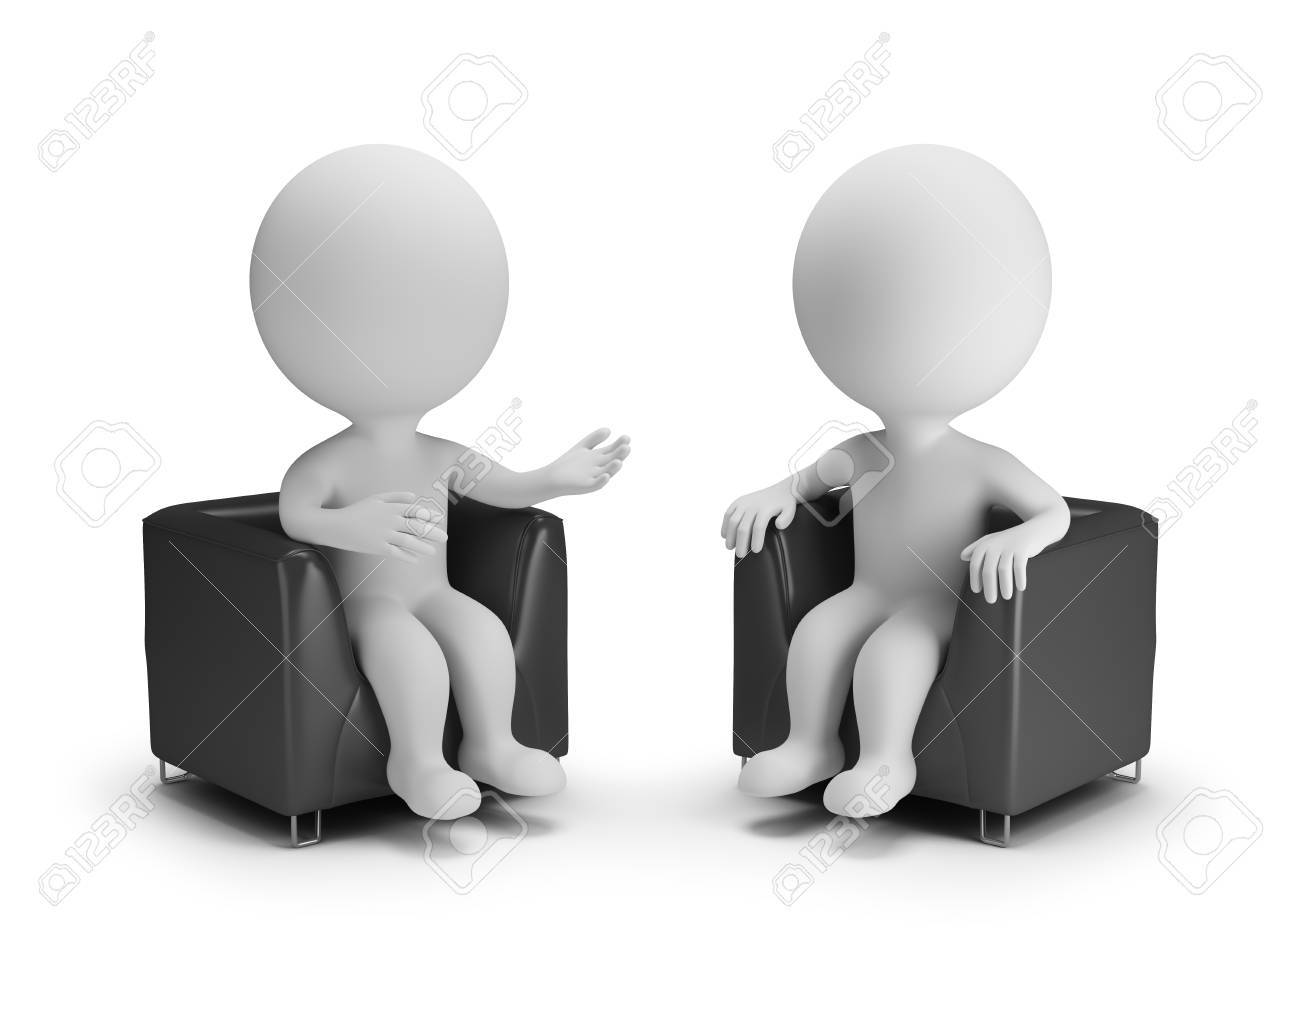 Two 3d people in armchairs chat. 3d image. White background. - 87275609